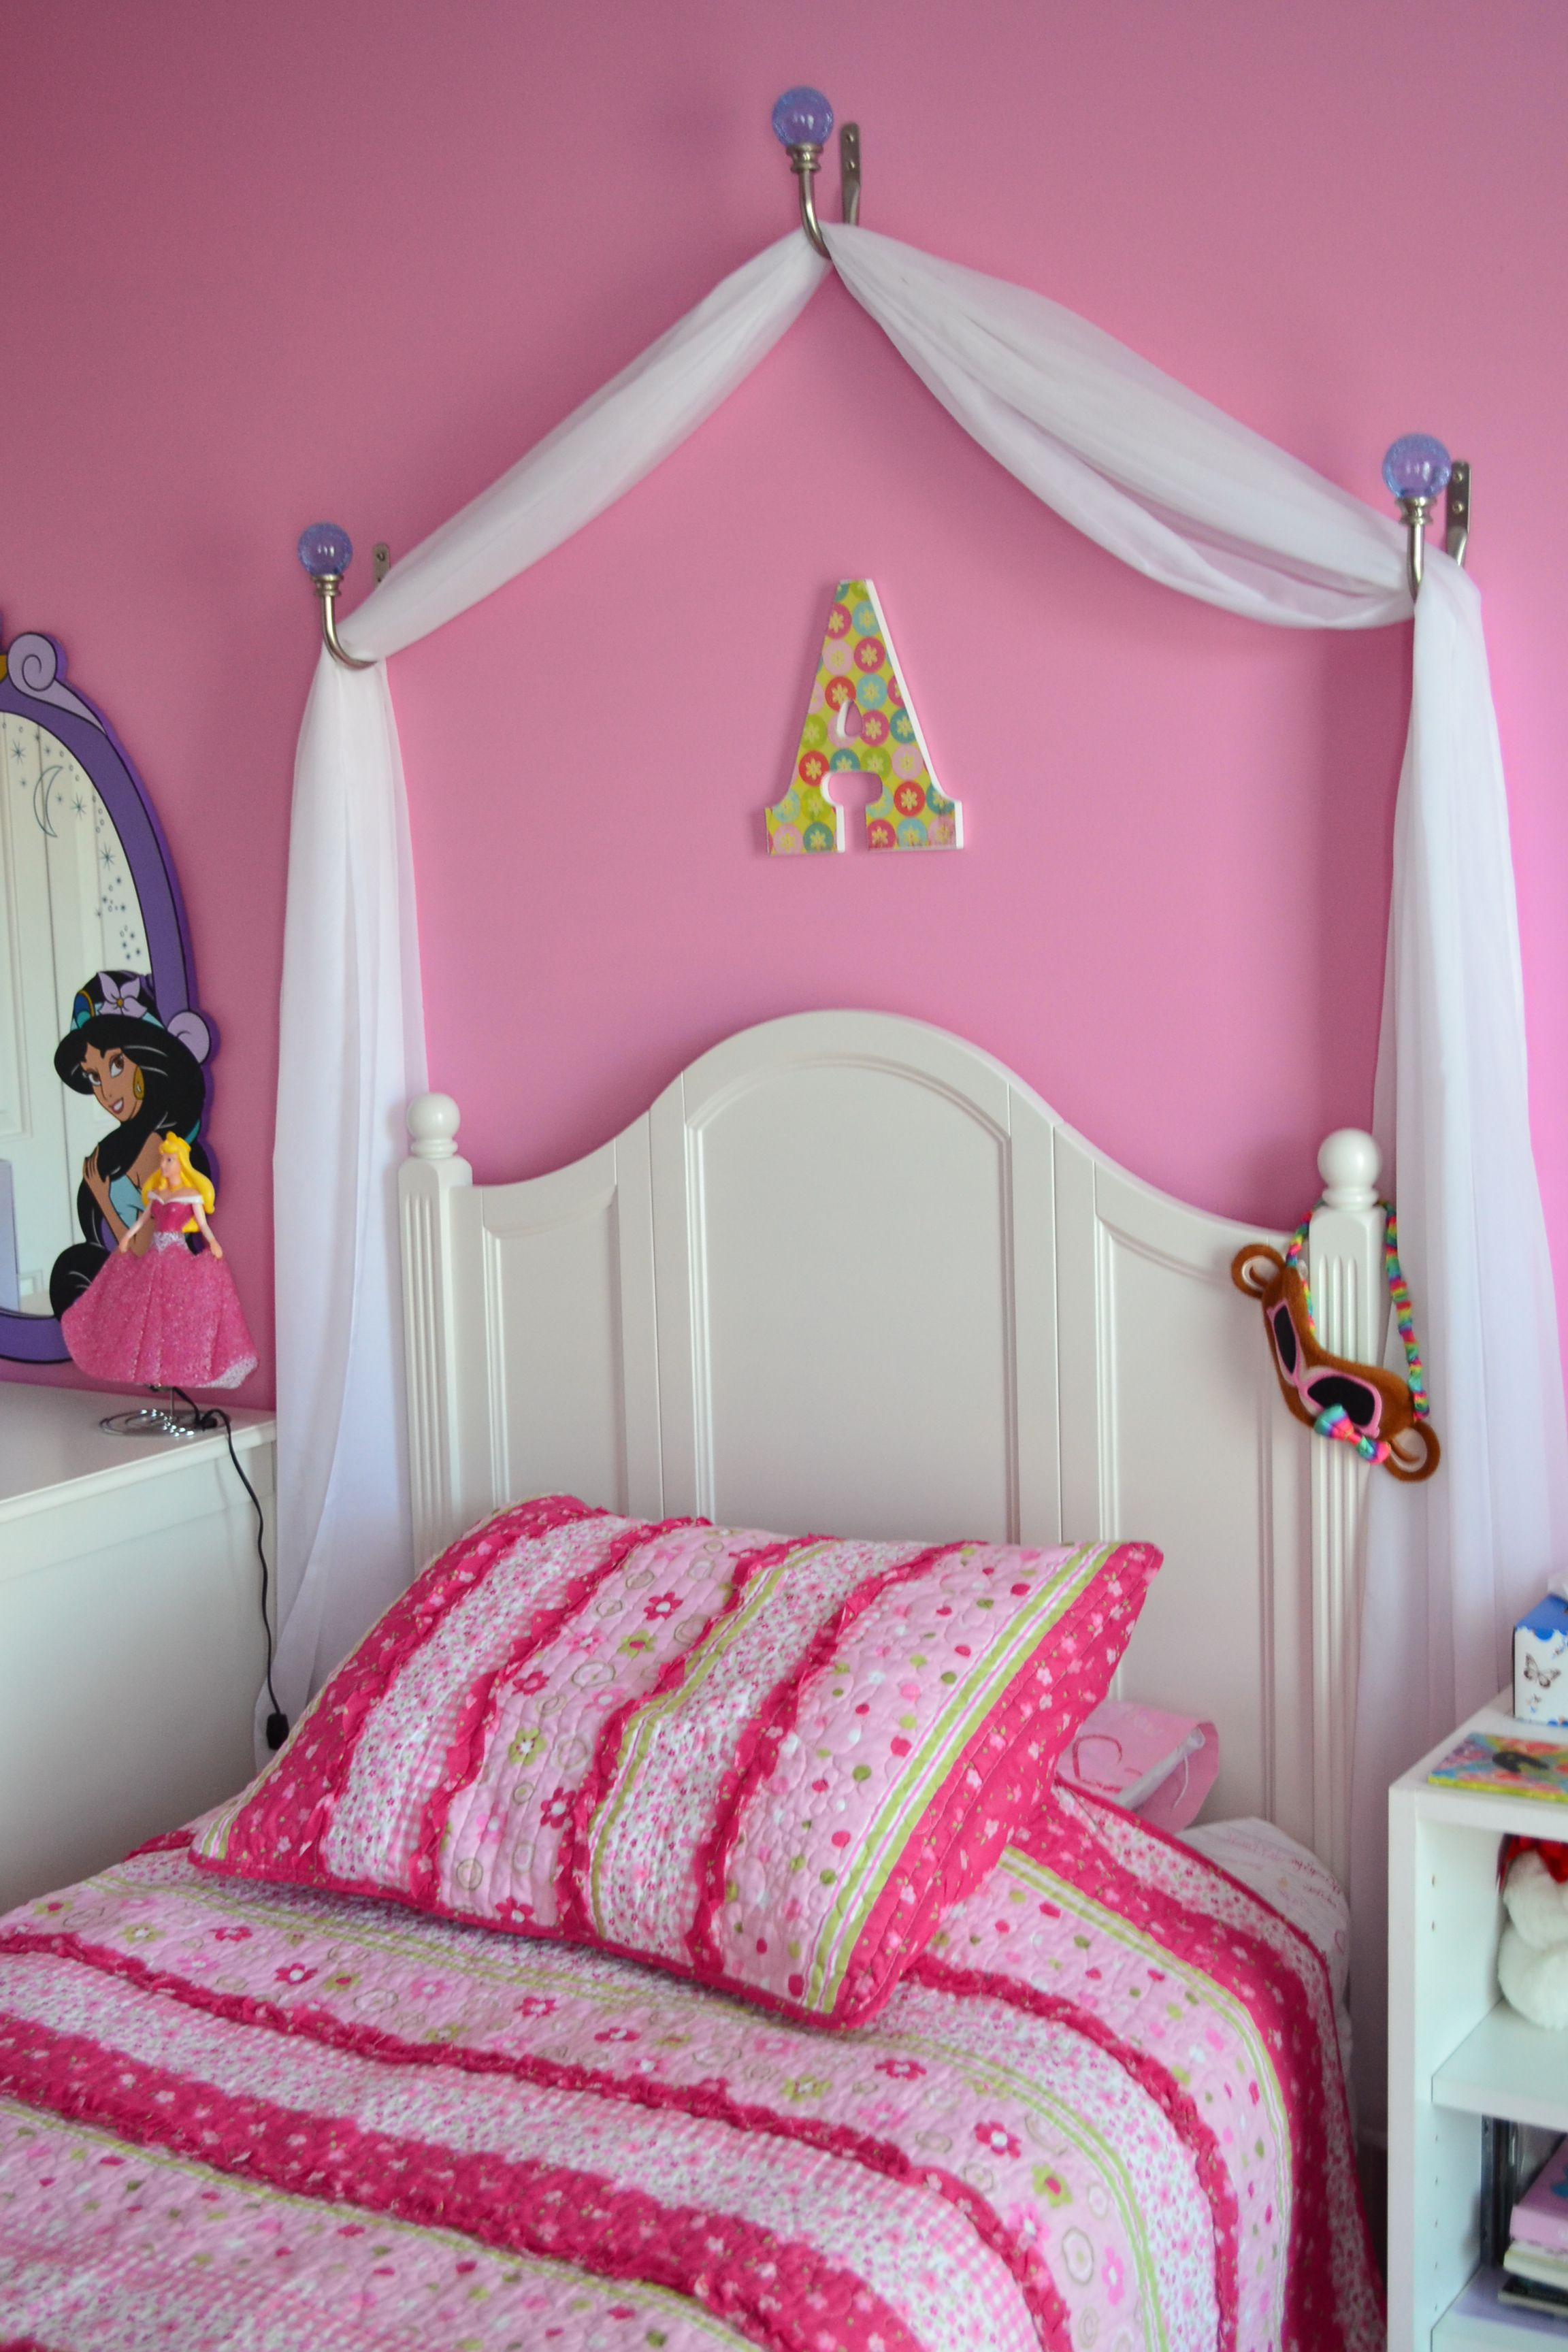 Creating a Disney Princess Room on a Budget & Creating a Disney Princess Room on a Budget | Homemade canopy ...